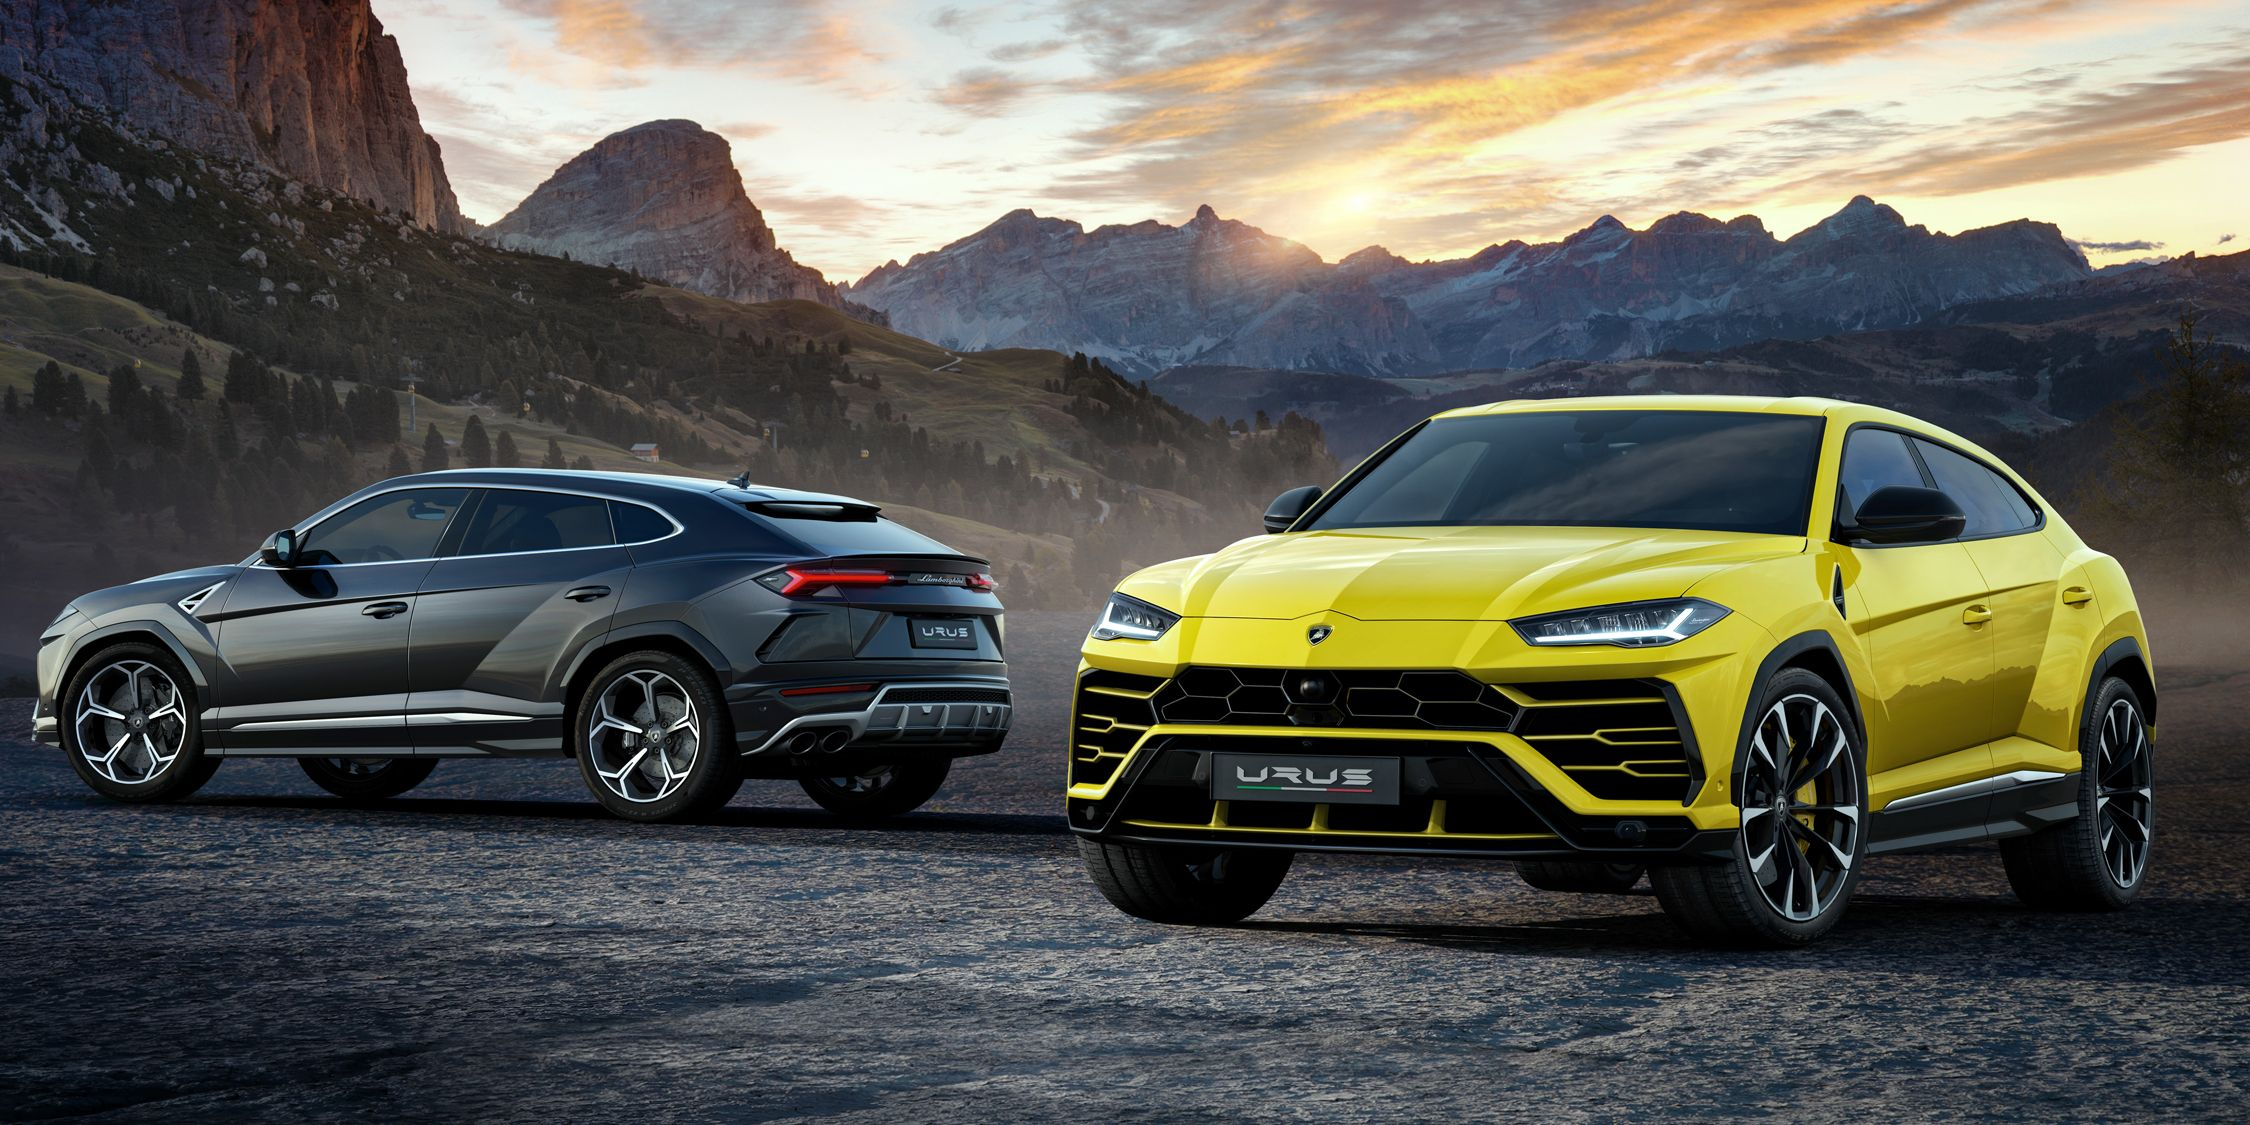 2019 Lamborghini Urus Suv Arrives With 641 Hp News Car And Driver